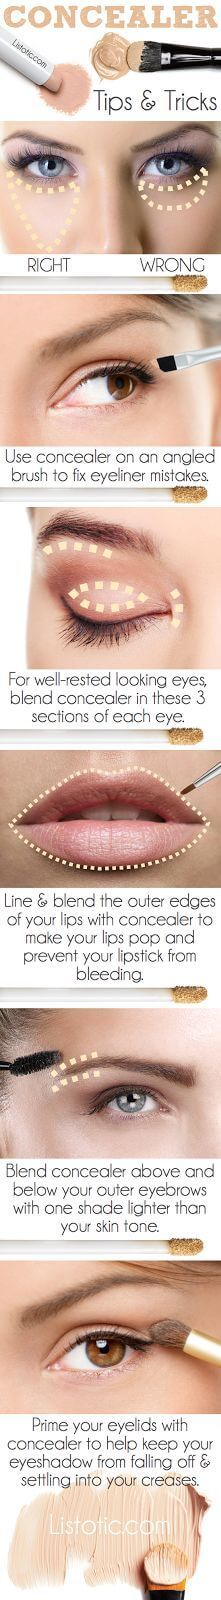 awesome 20 Beauty Mistakes You Didn't Know You Were Making